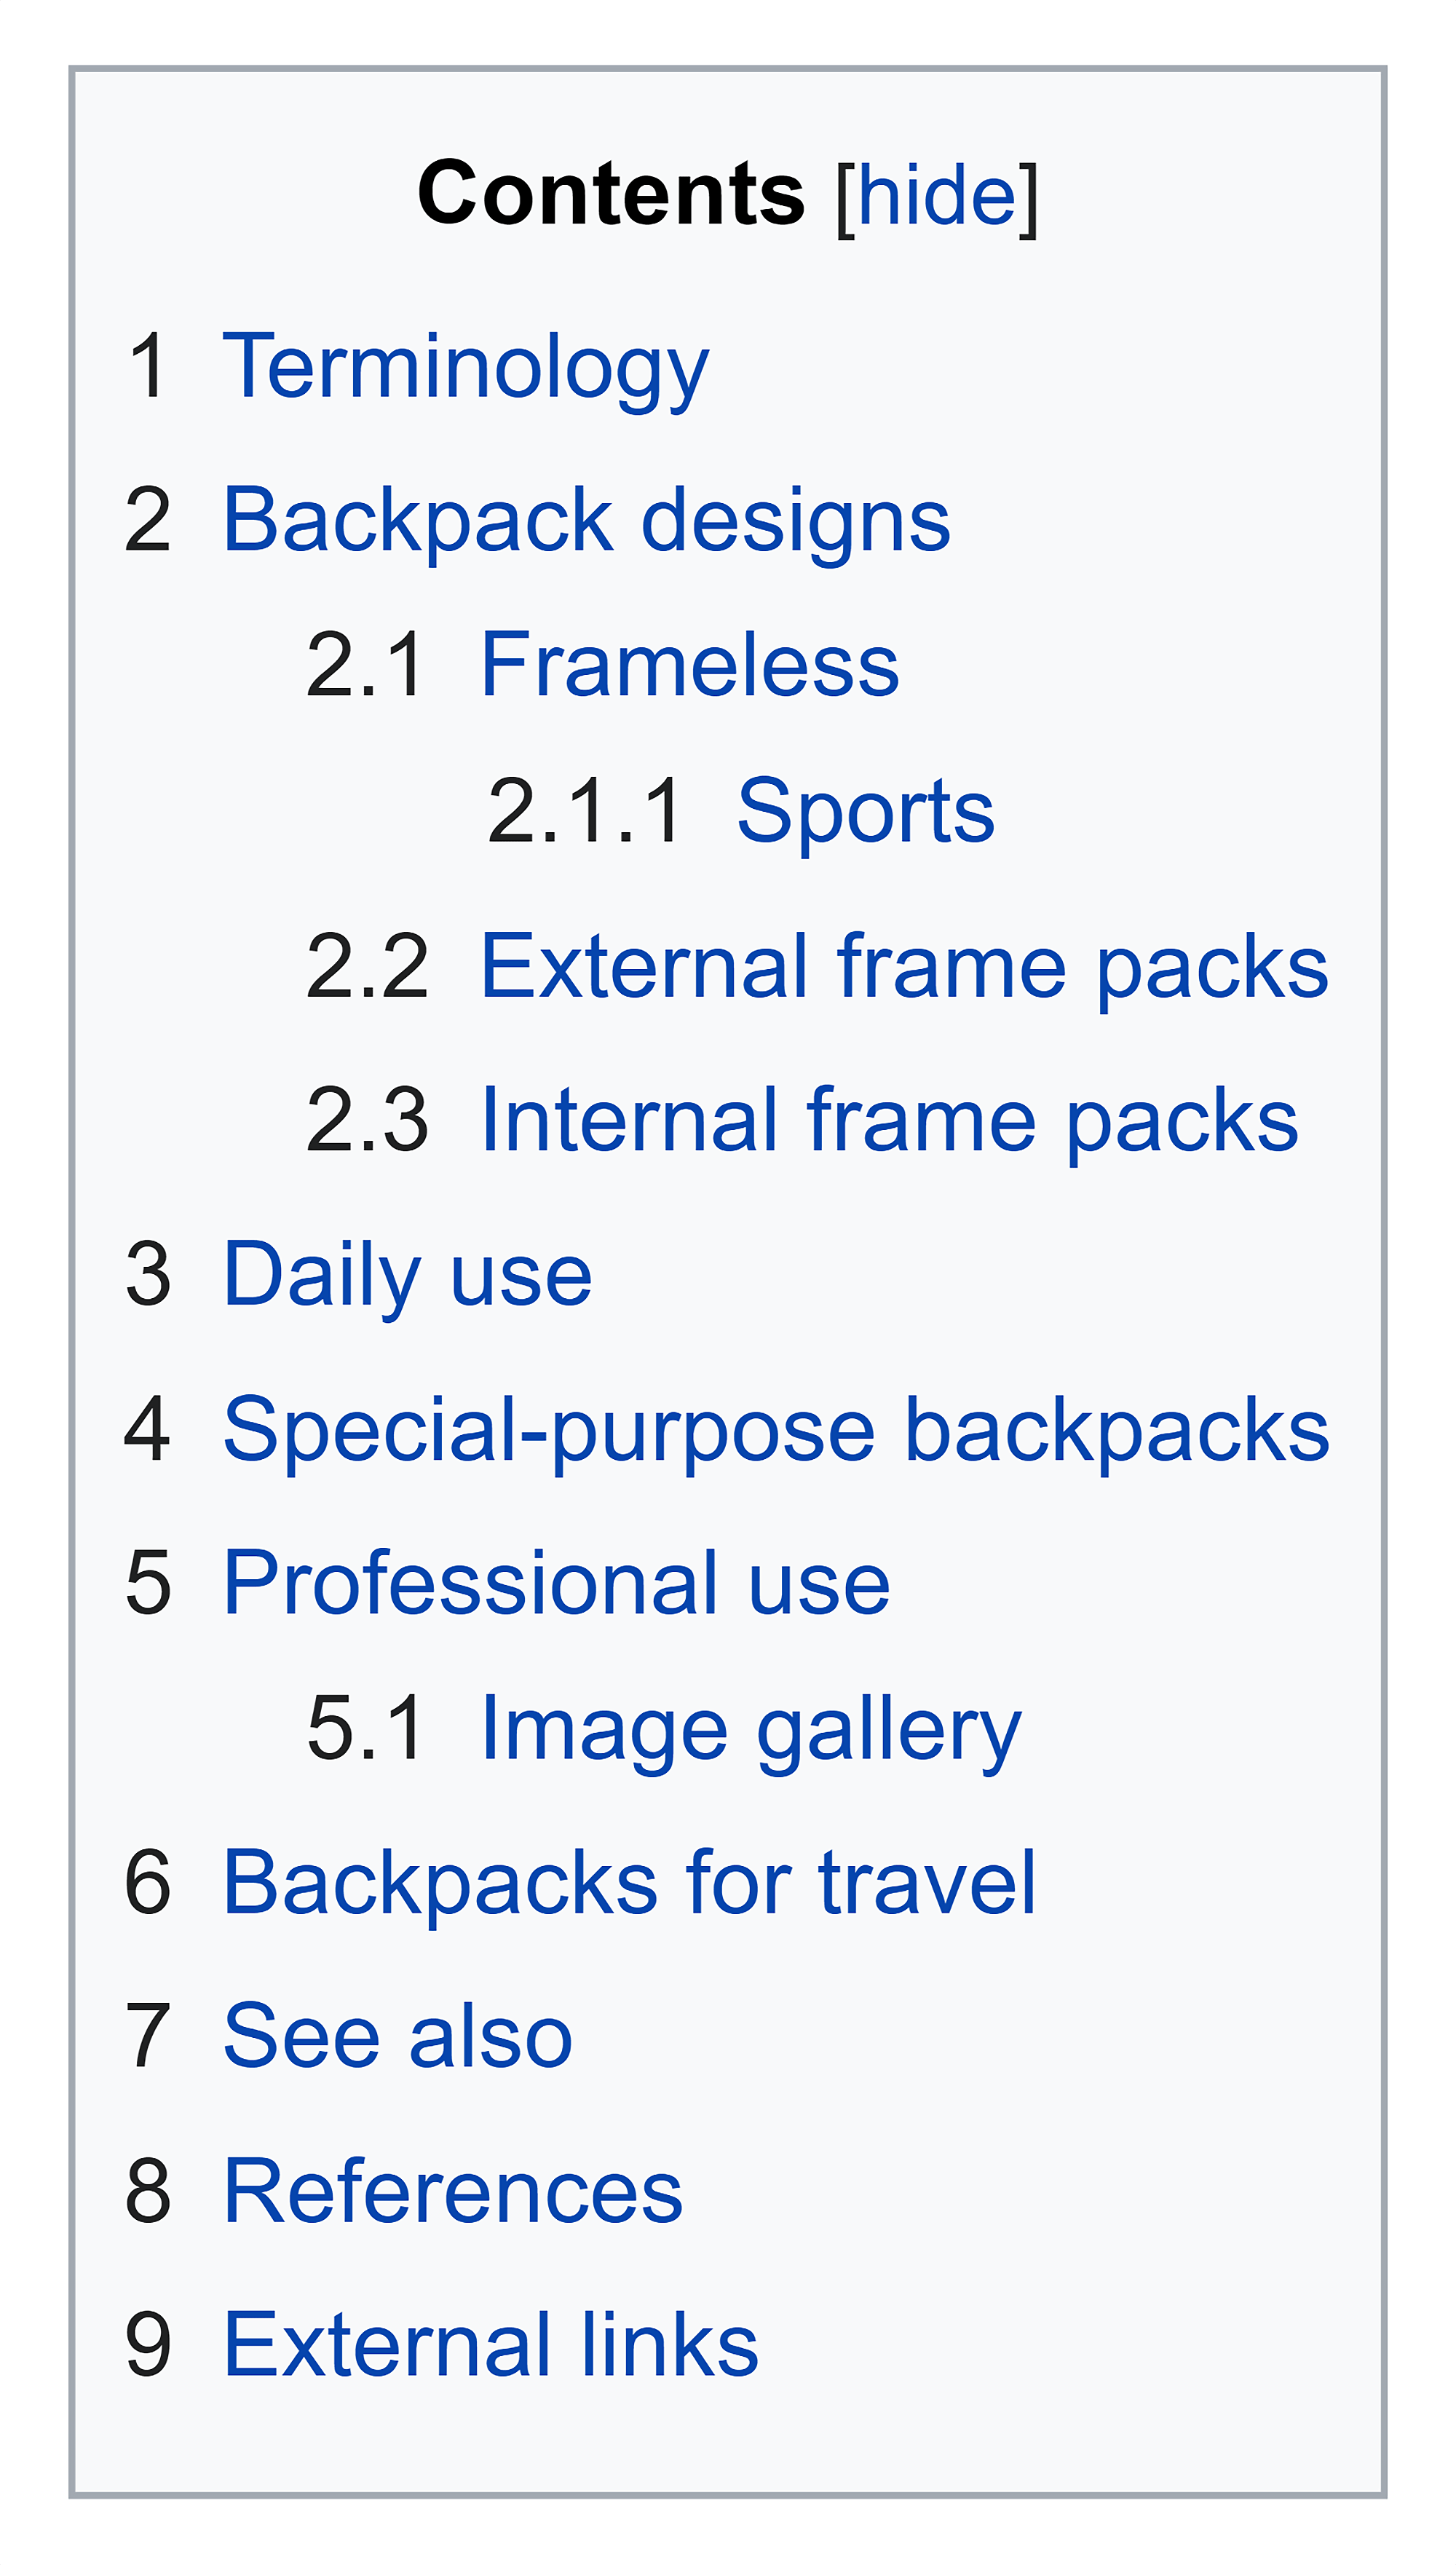 Wikipedia – Backpack – Contents